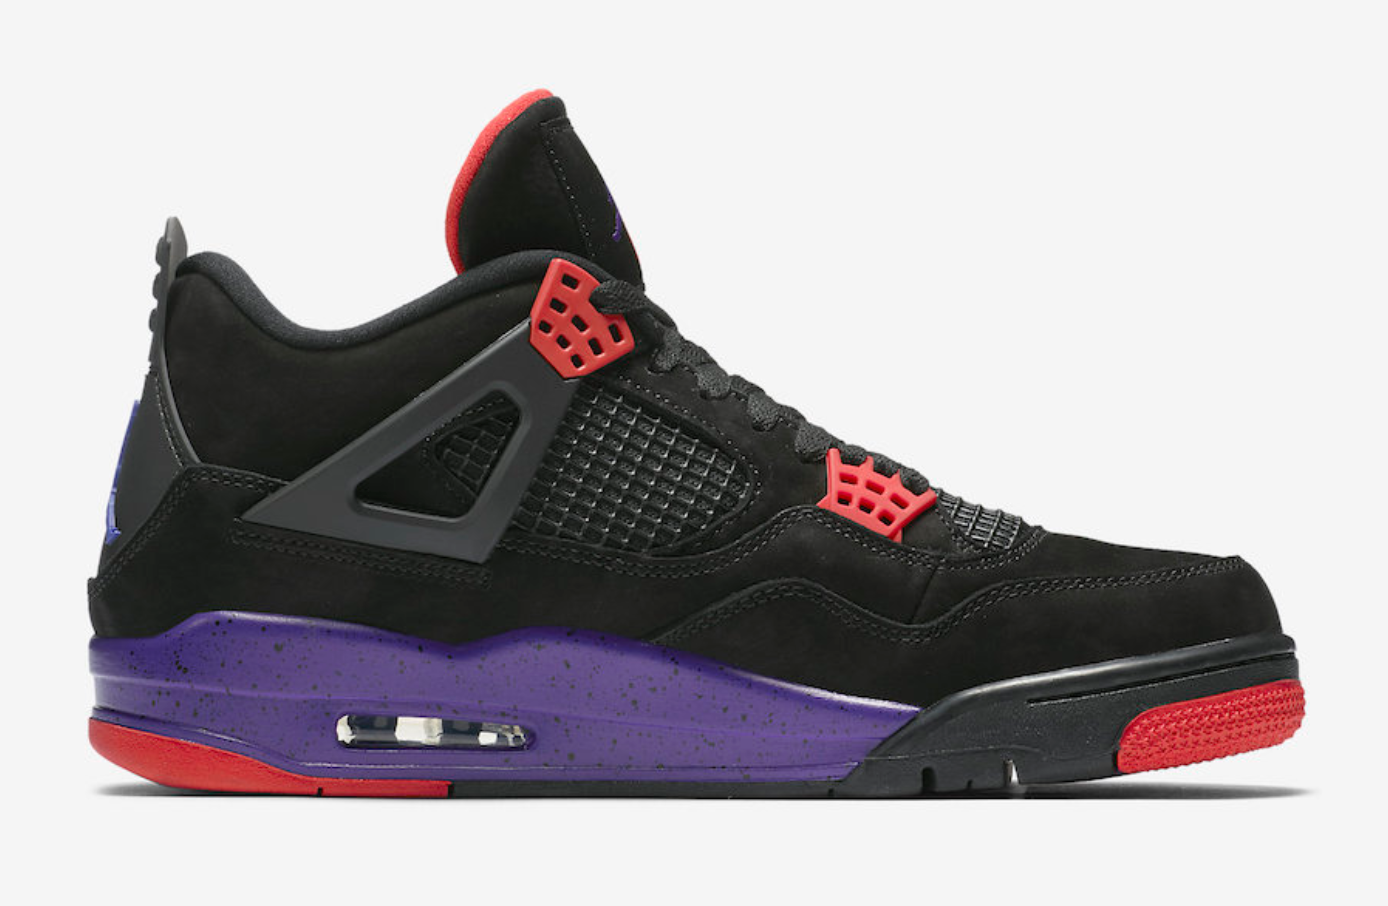 New Sneaker Releases to Watch Out For